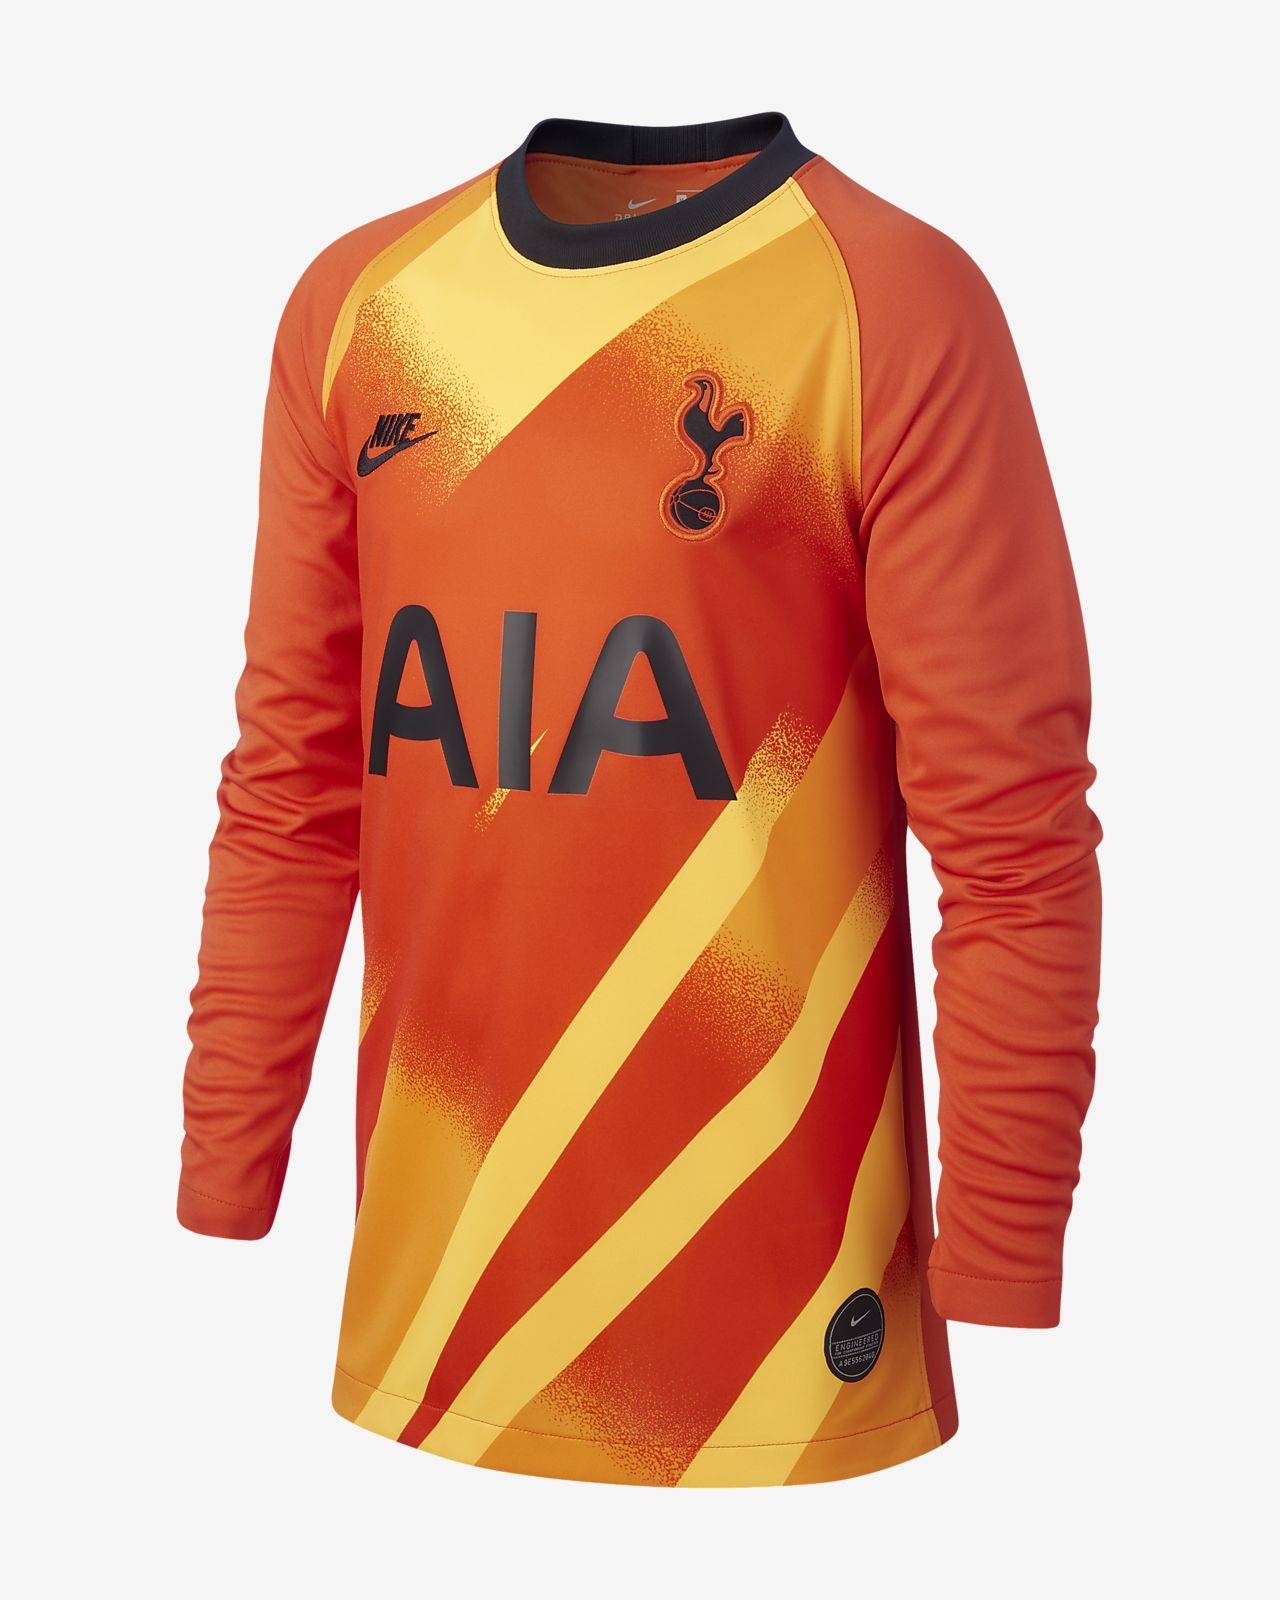 Tottenham Hotspur 2019/20 Stadium Goalkeeper Older Kids' Football Shirt